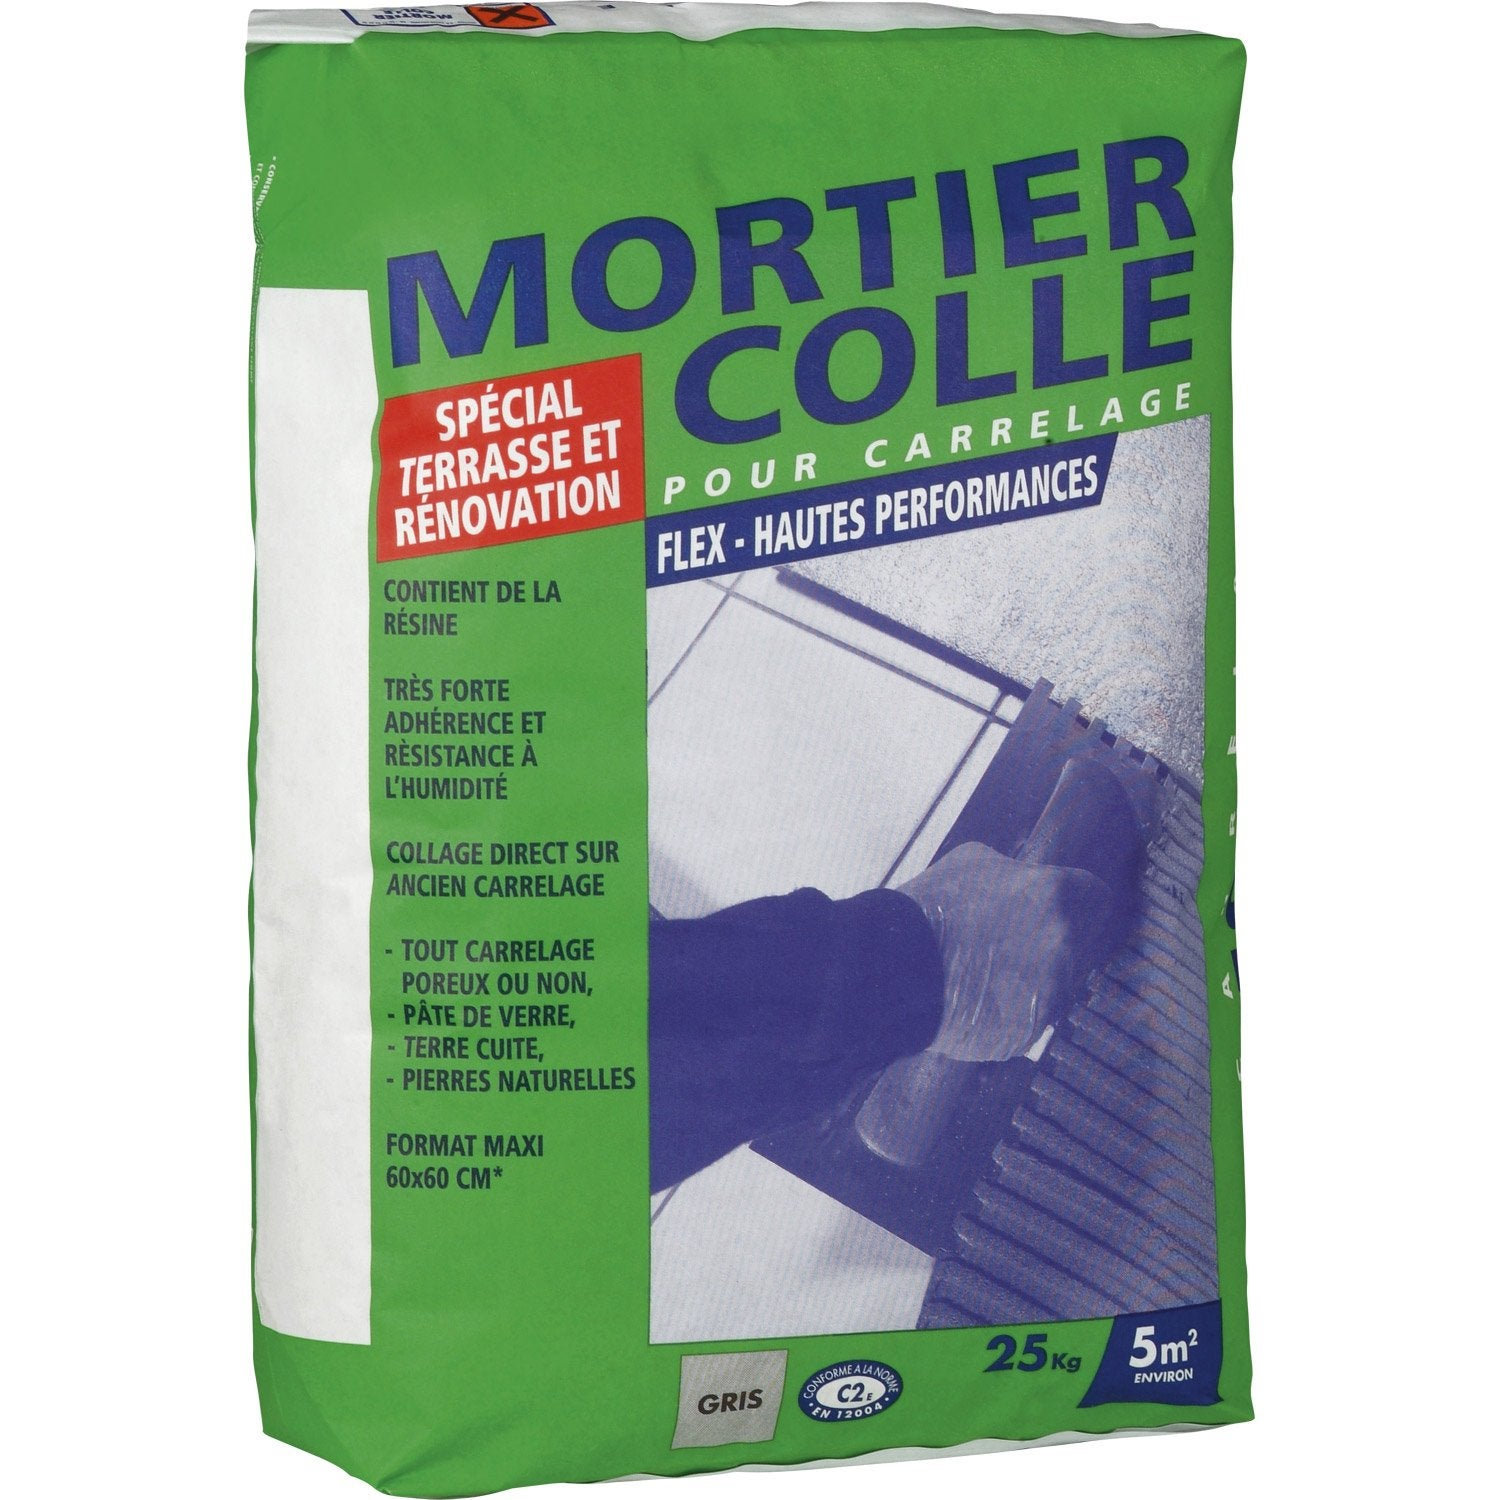 Mortier colle flex gris 25 kg leroy merlin - Prix sac ciment leroy merlin ...